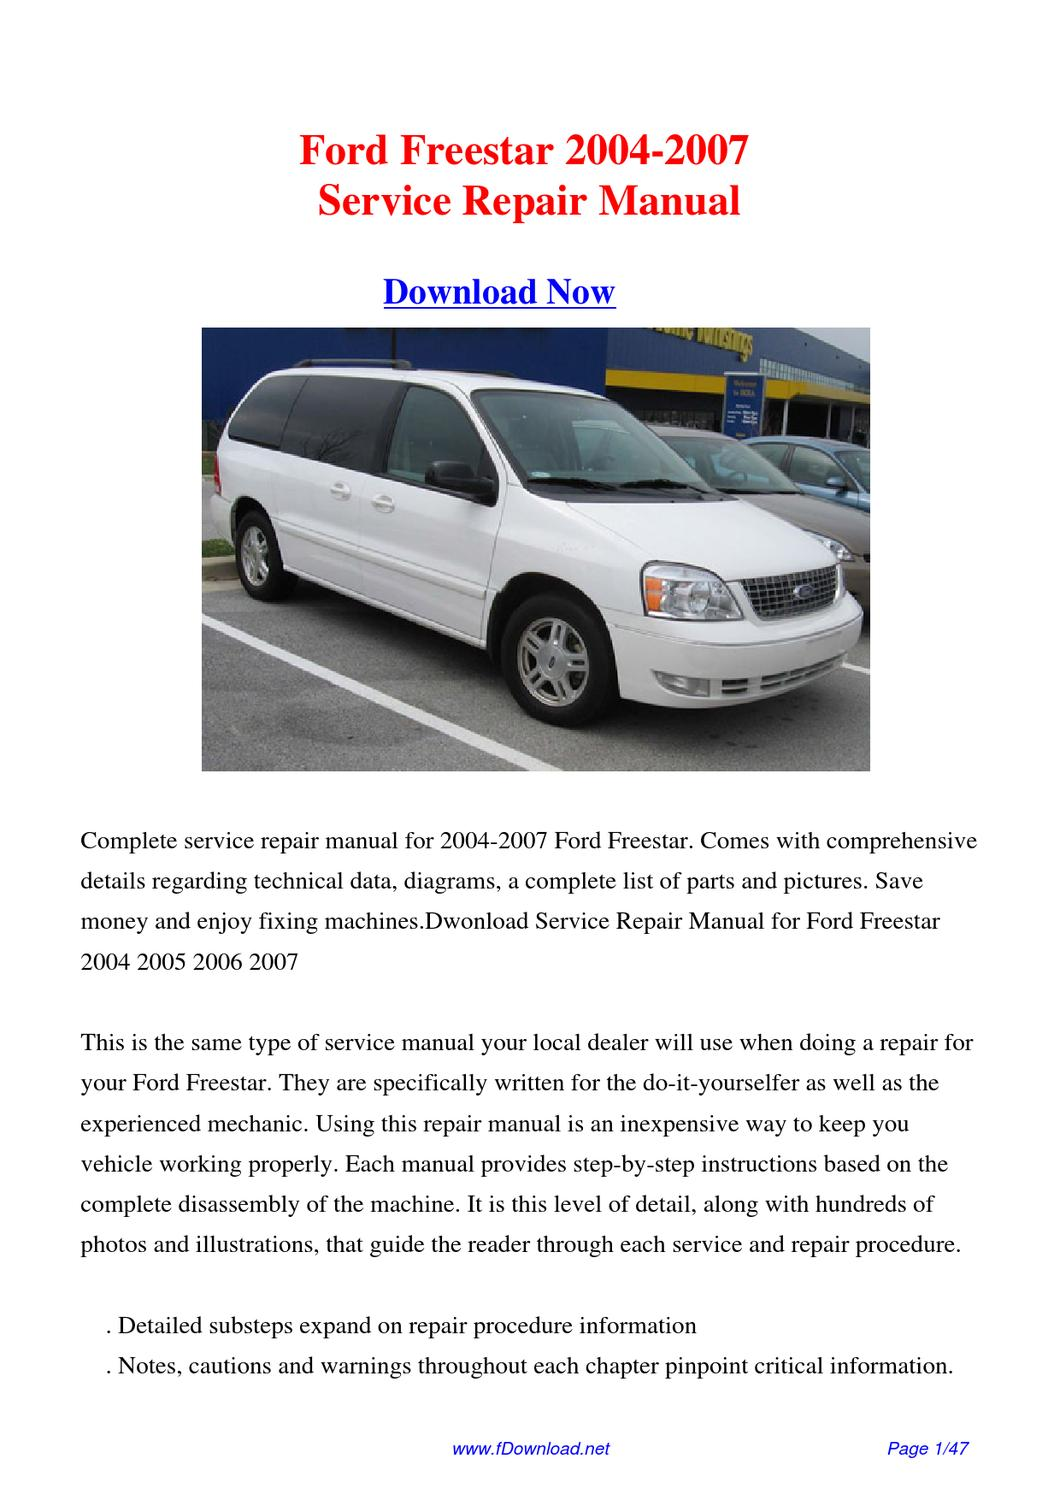 service manual pdf 2007 ford freestar engine repair. Black Bedroom Furniture Sets. Home Design Ideas